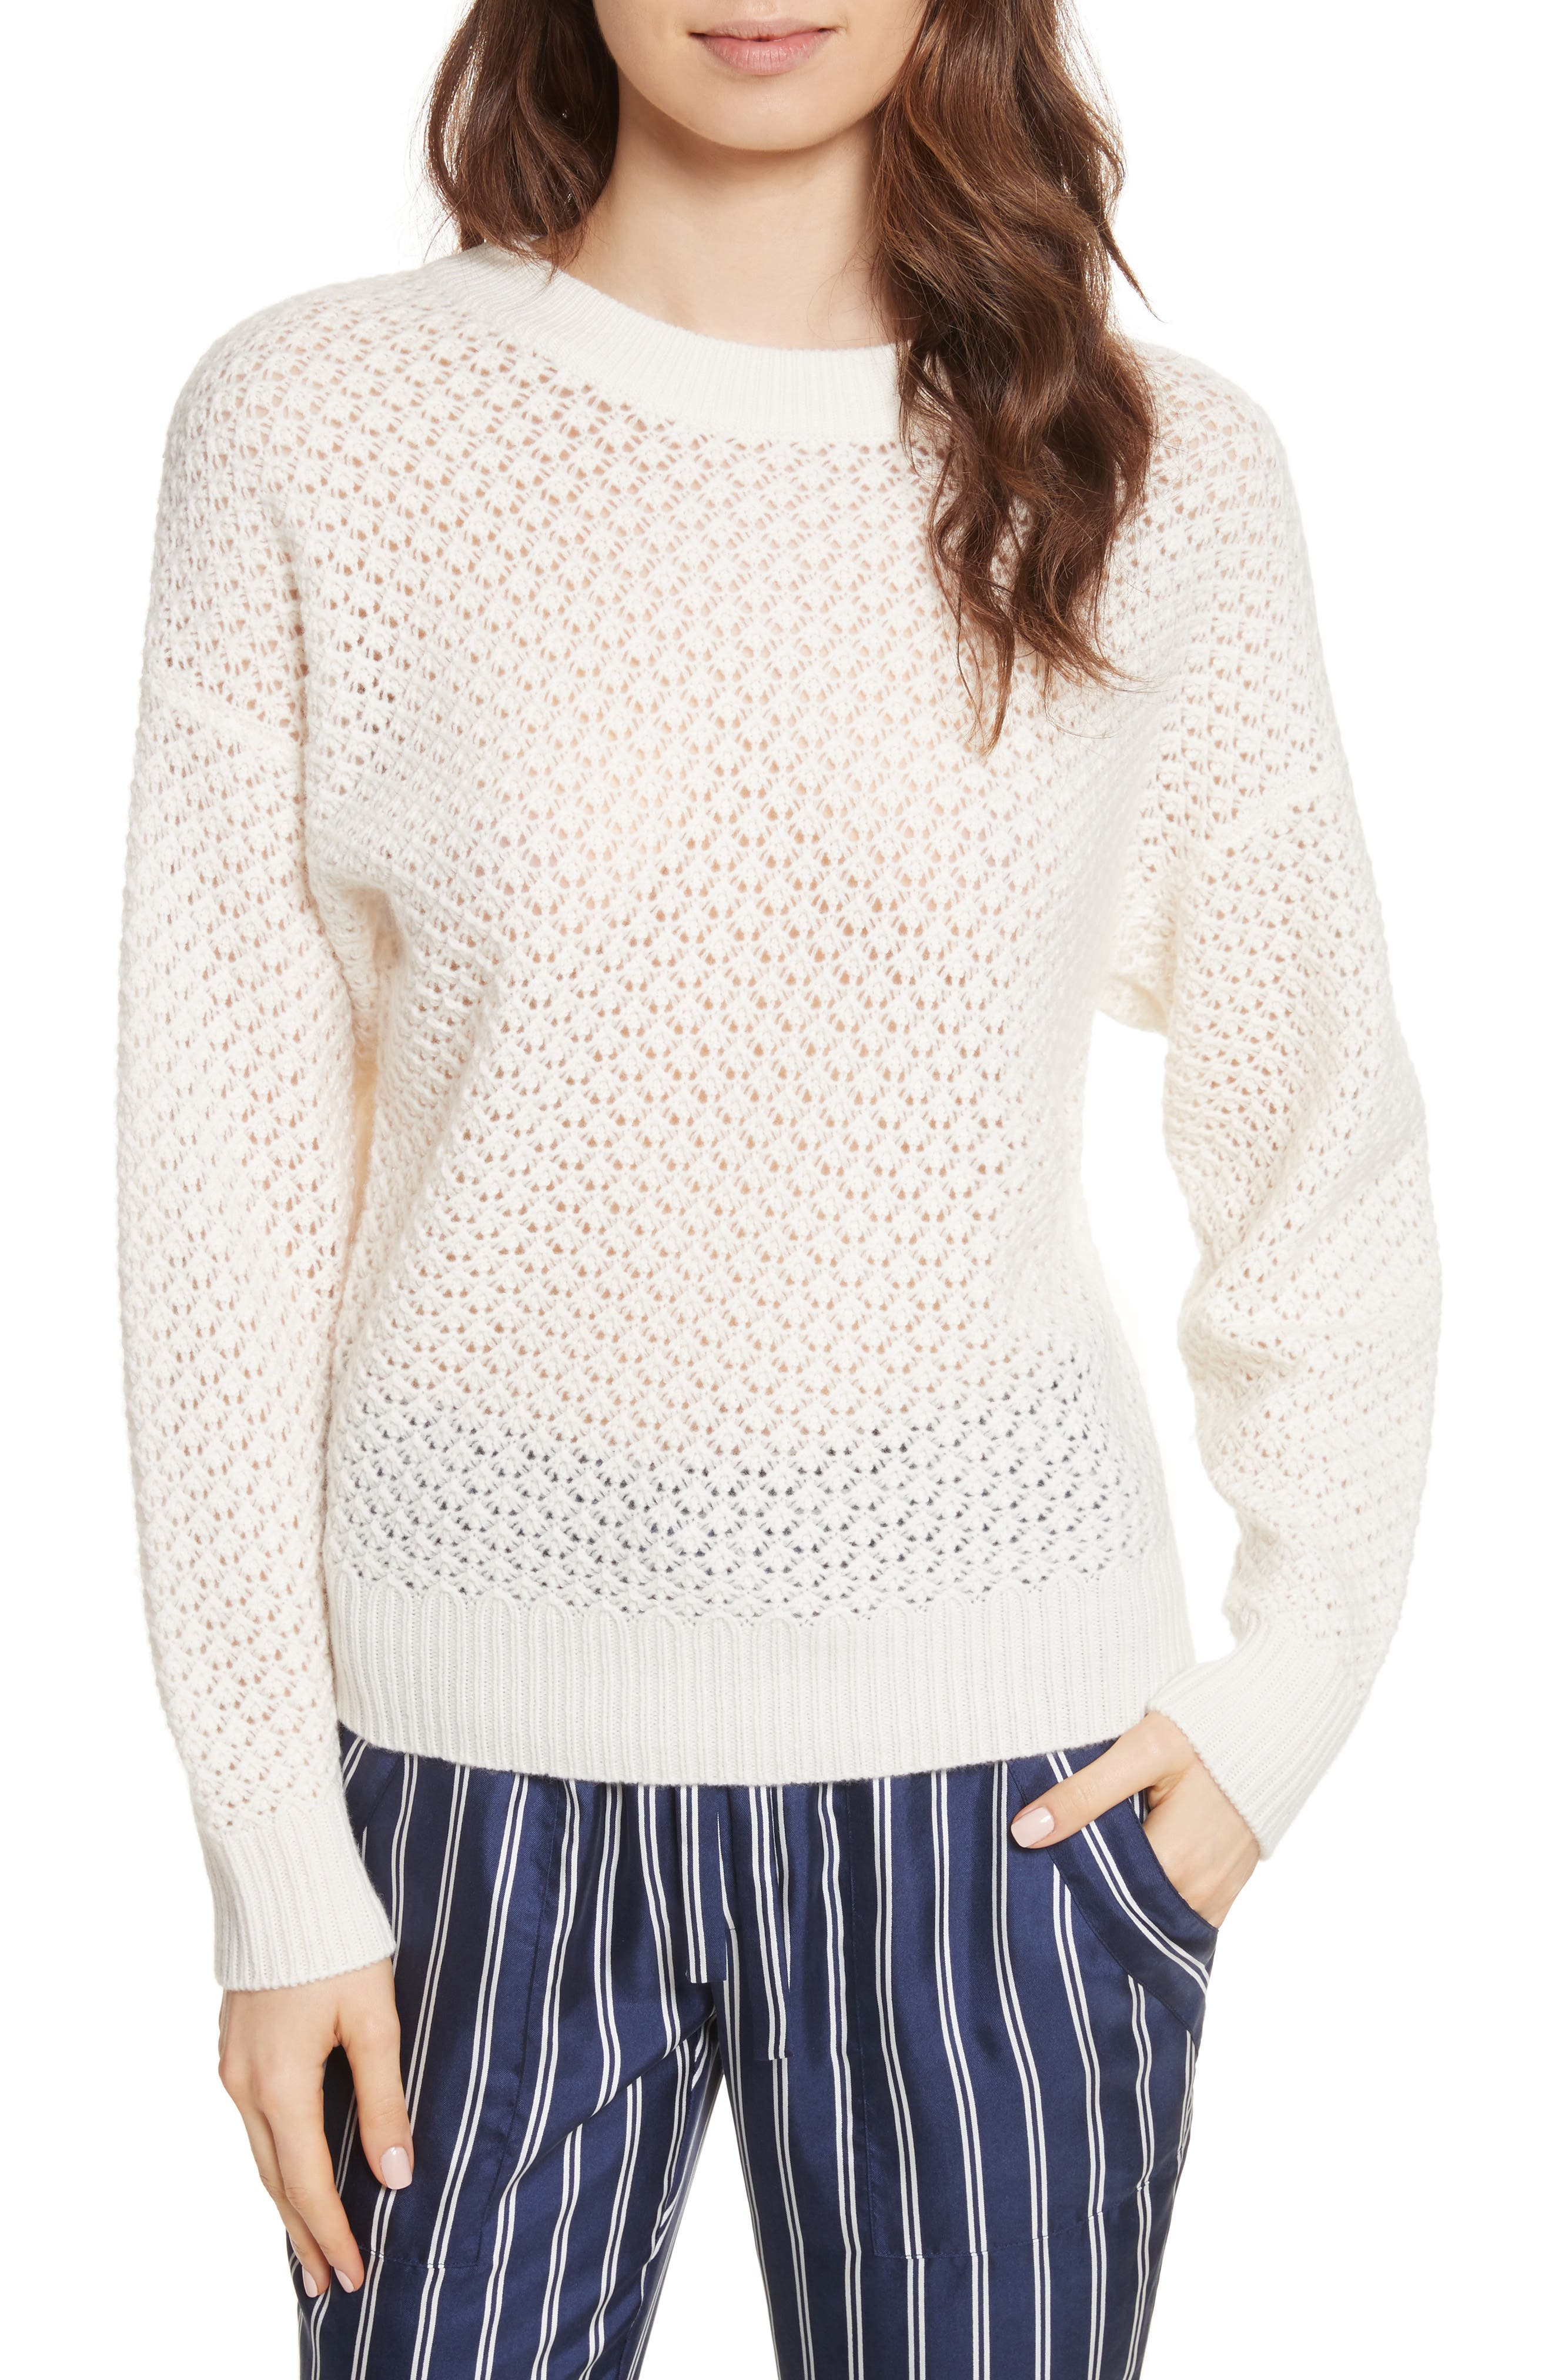 Vedis Wool & Cashmere Sweater,                         Main,                         color,